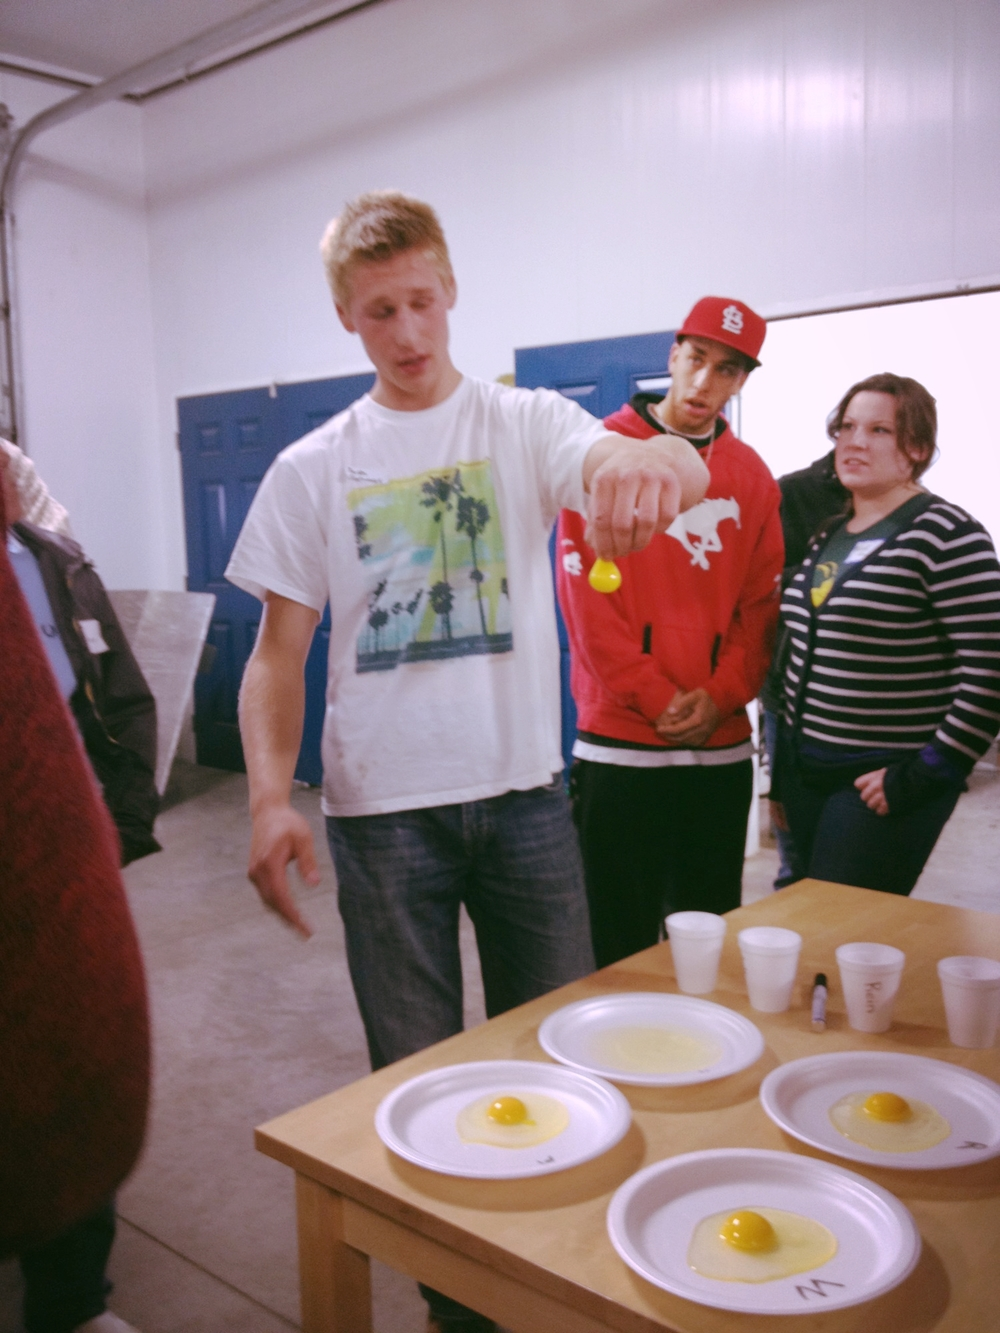 Josh giving an egg demonstration